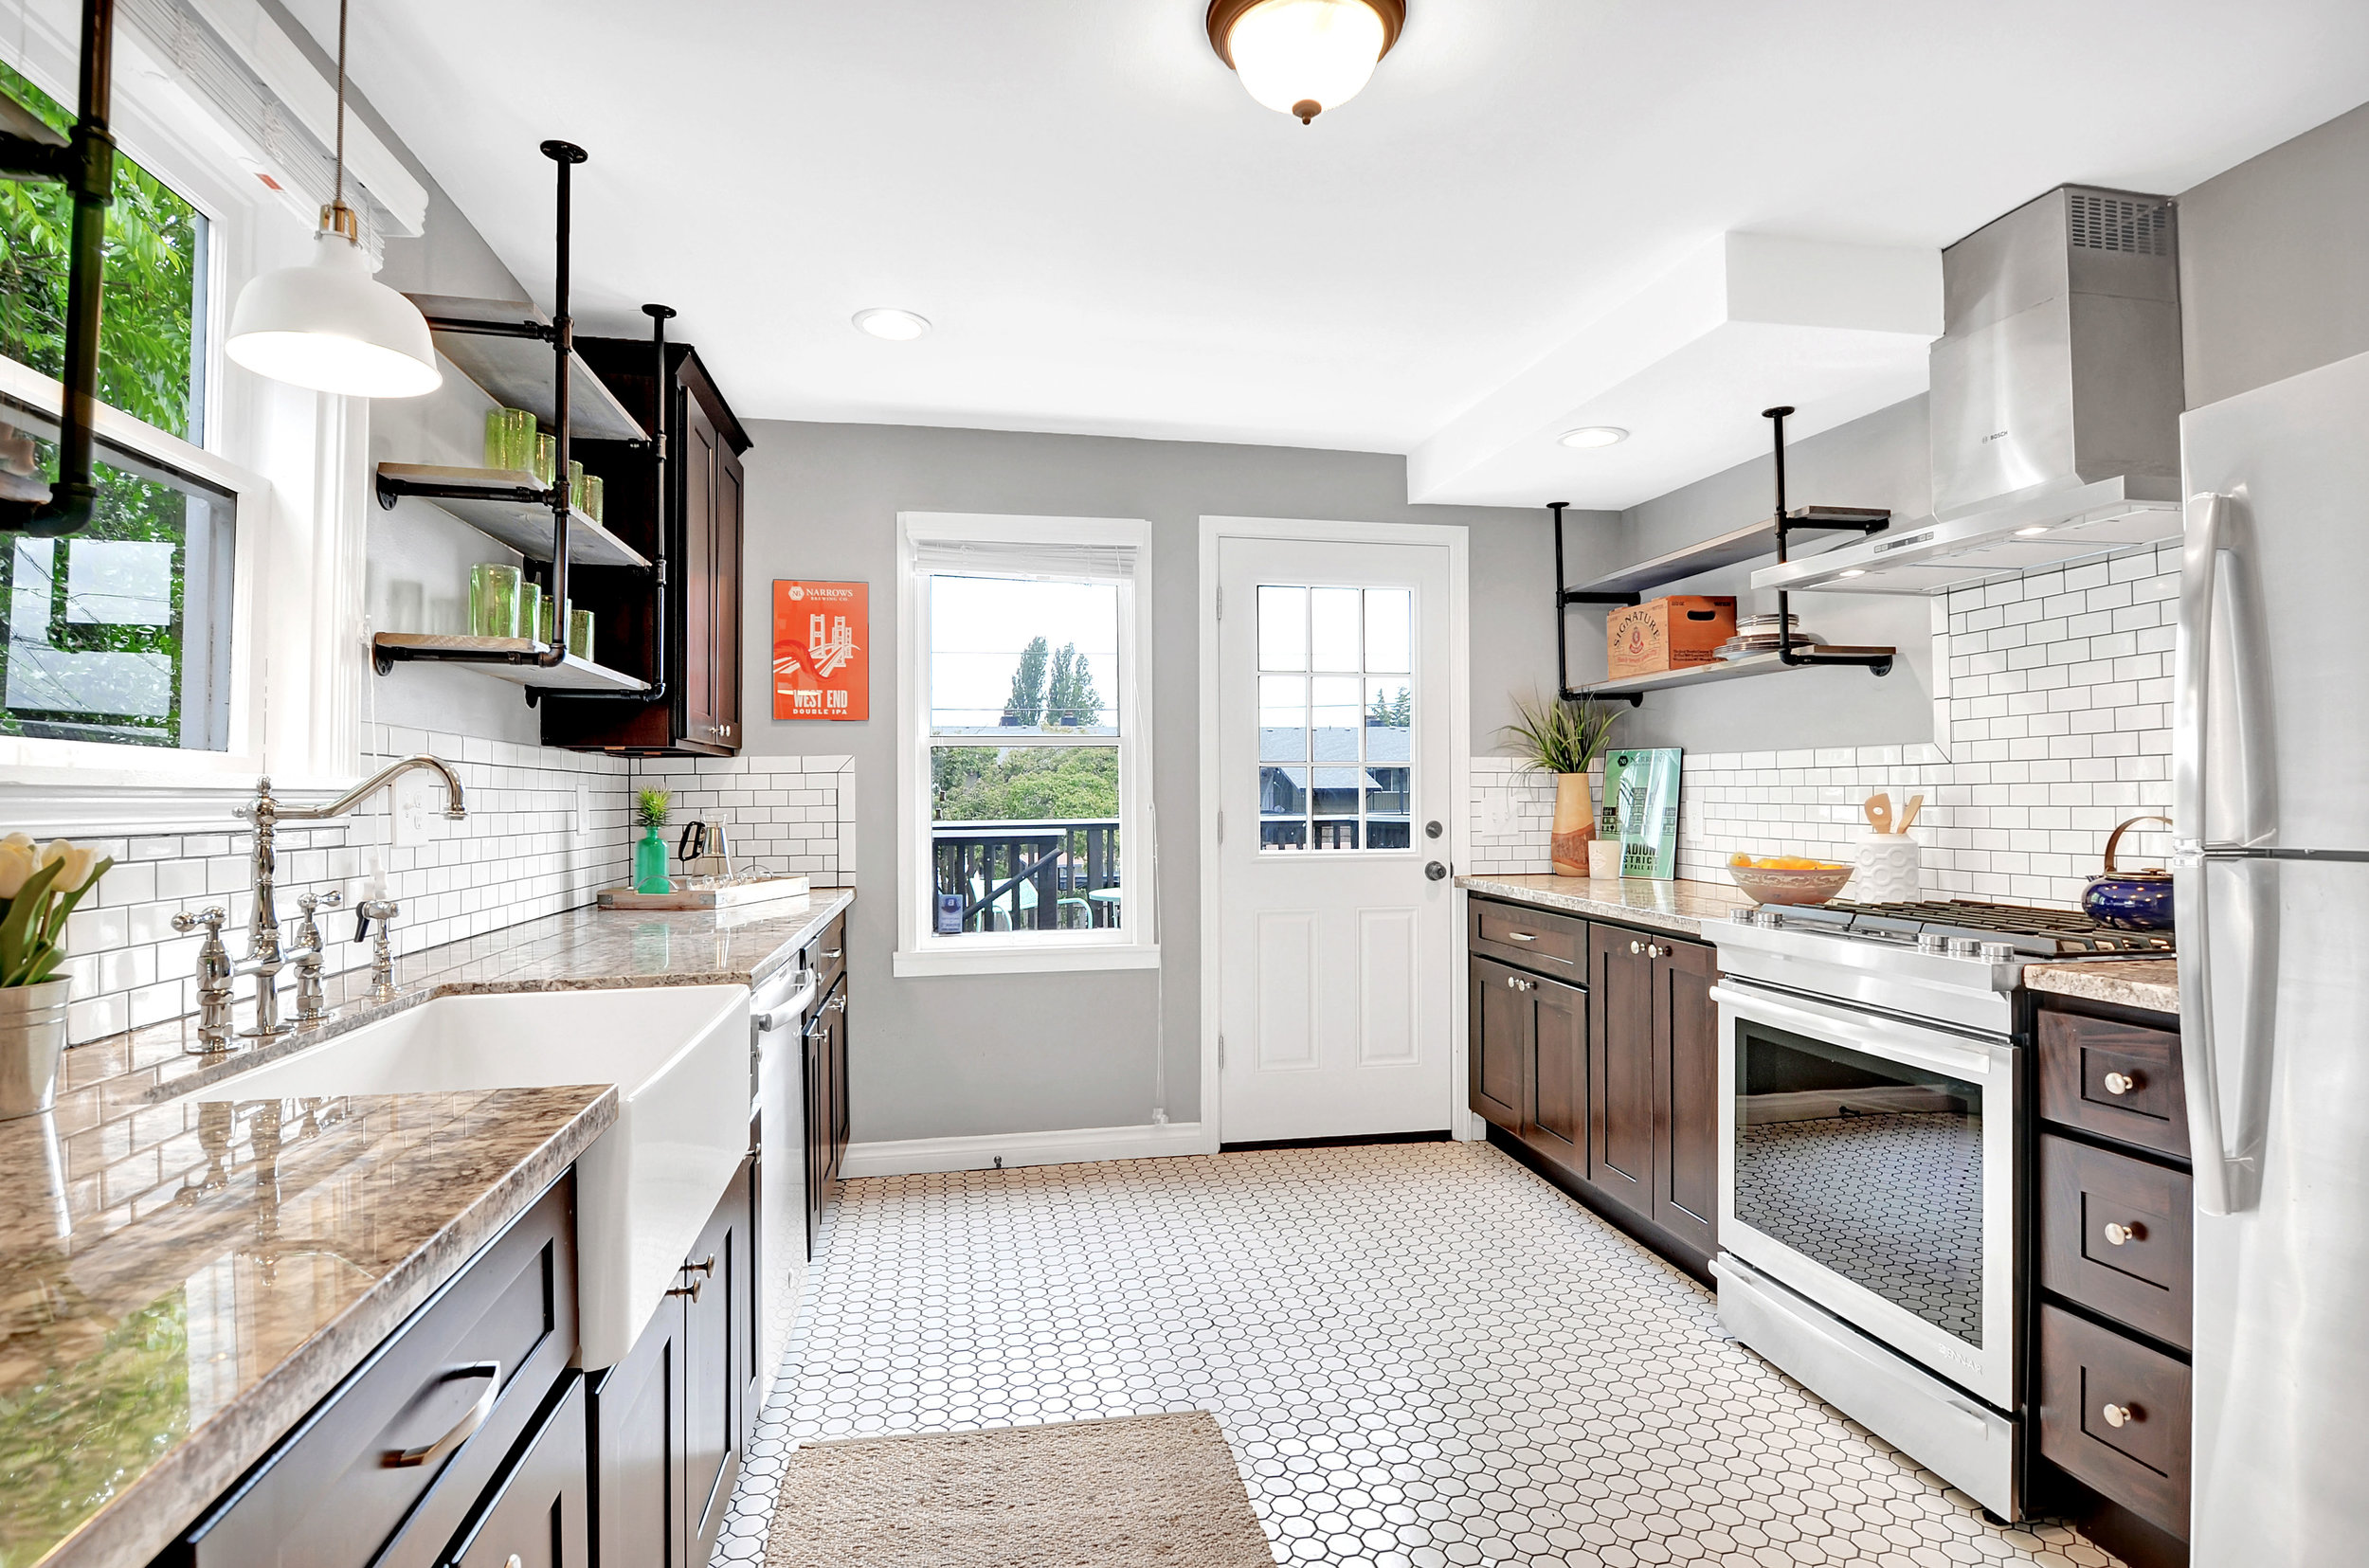 We love this kitchen: octagonal tile flooring, subway tile backsplash, stone counters, gas range, farmhouse sink, and industrial pipe shelving.